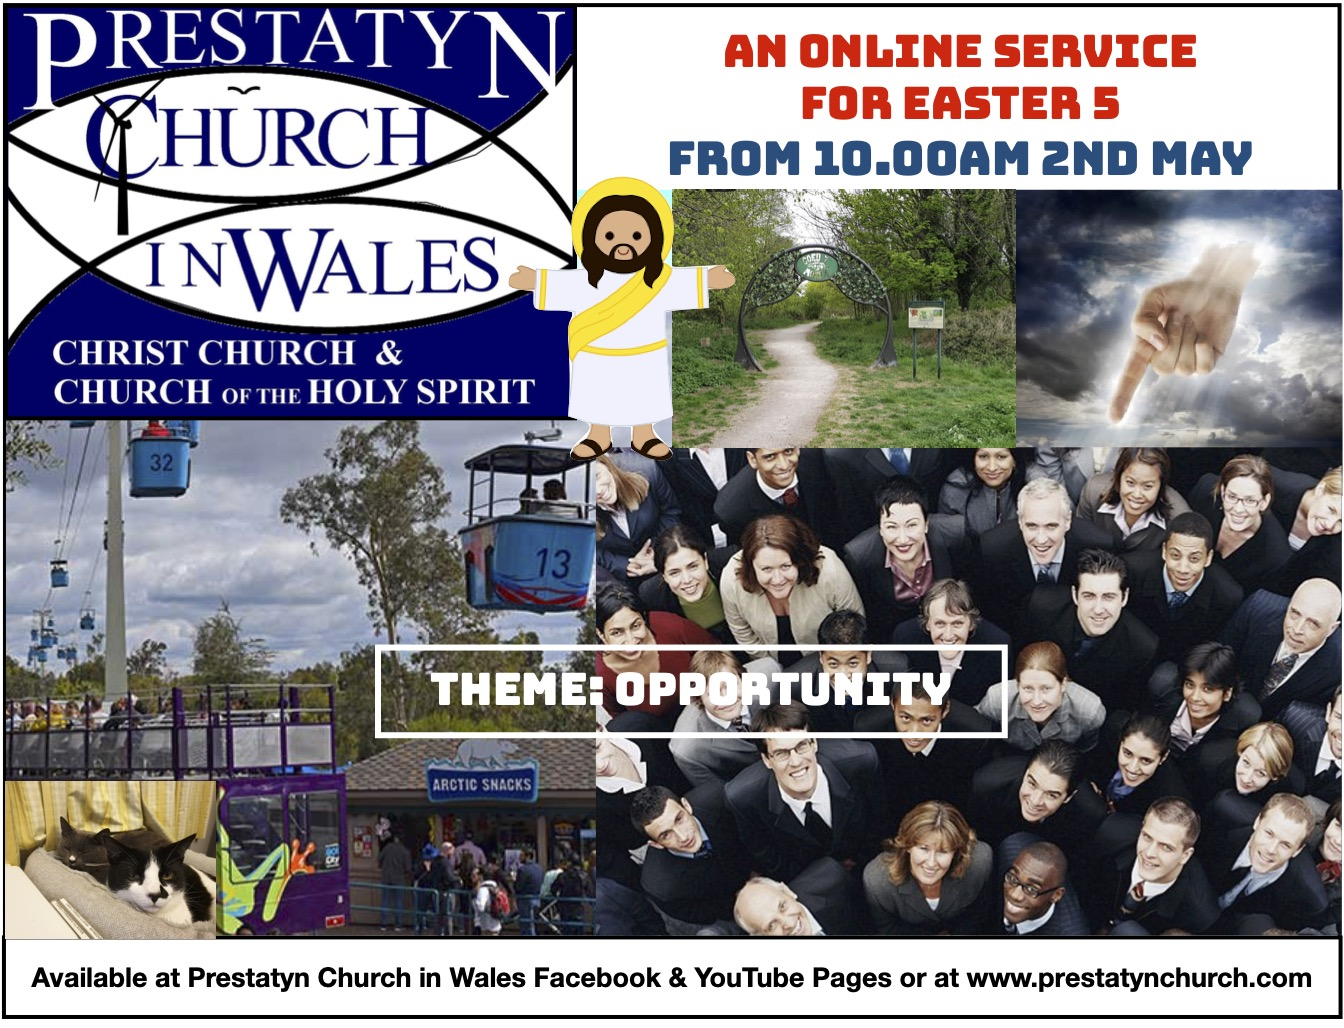 """Contains Images & Text. Texts read: """"Prestatyn Church In Wales. Christ Church & Church of the Holy Spirit."""" An Online Service for Easter 5 From 10.00 AM 2nd May."""" """"Theme: Opportunity."""" """"Available at Prestatyn Church In Wales Facebook and Youtube Pages or at www.prestatynchurch.com"""""""